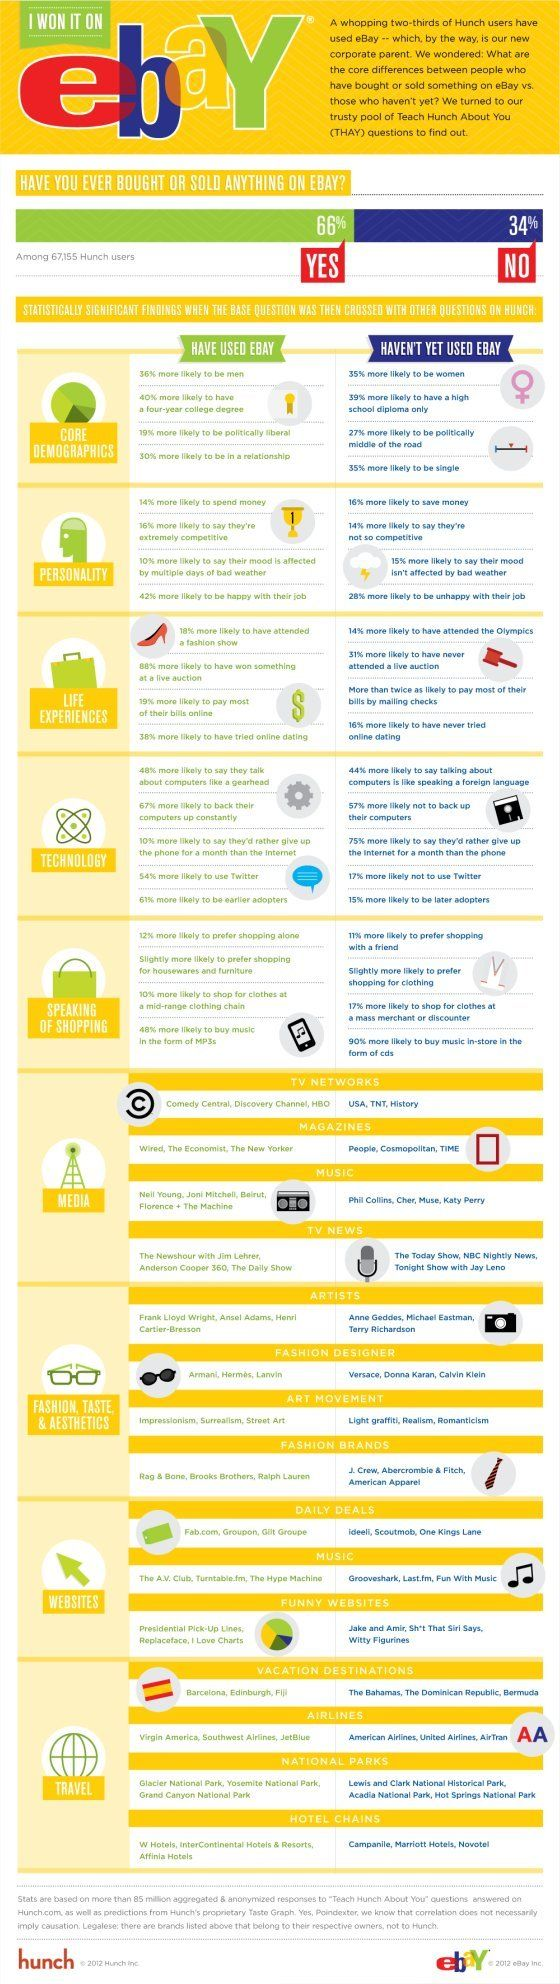 First look at eBay's use of Hunch data: Ebay User, Sons Los, How Sons, De Ebay, Media Infographic, Interesting Infographic, Ebay Infographic, Ecommerce Infographic, The User